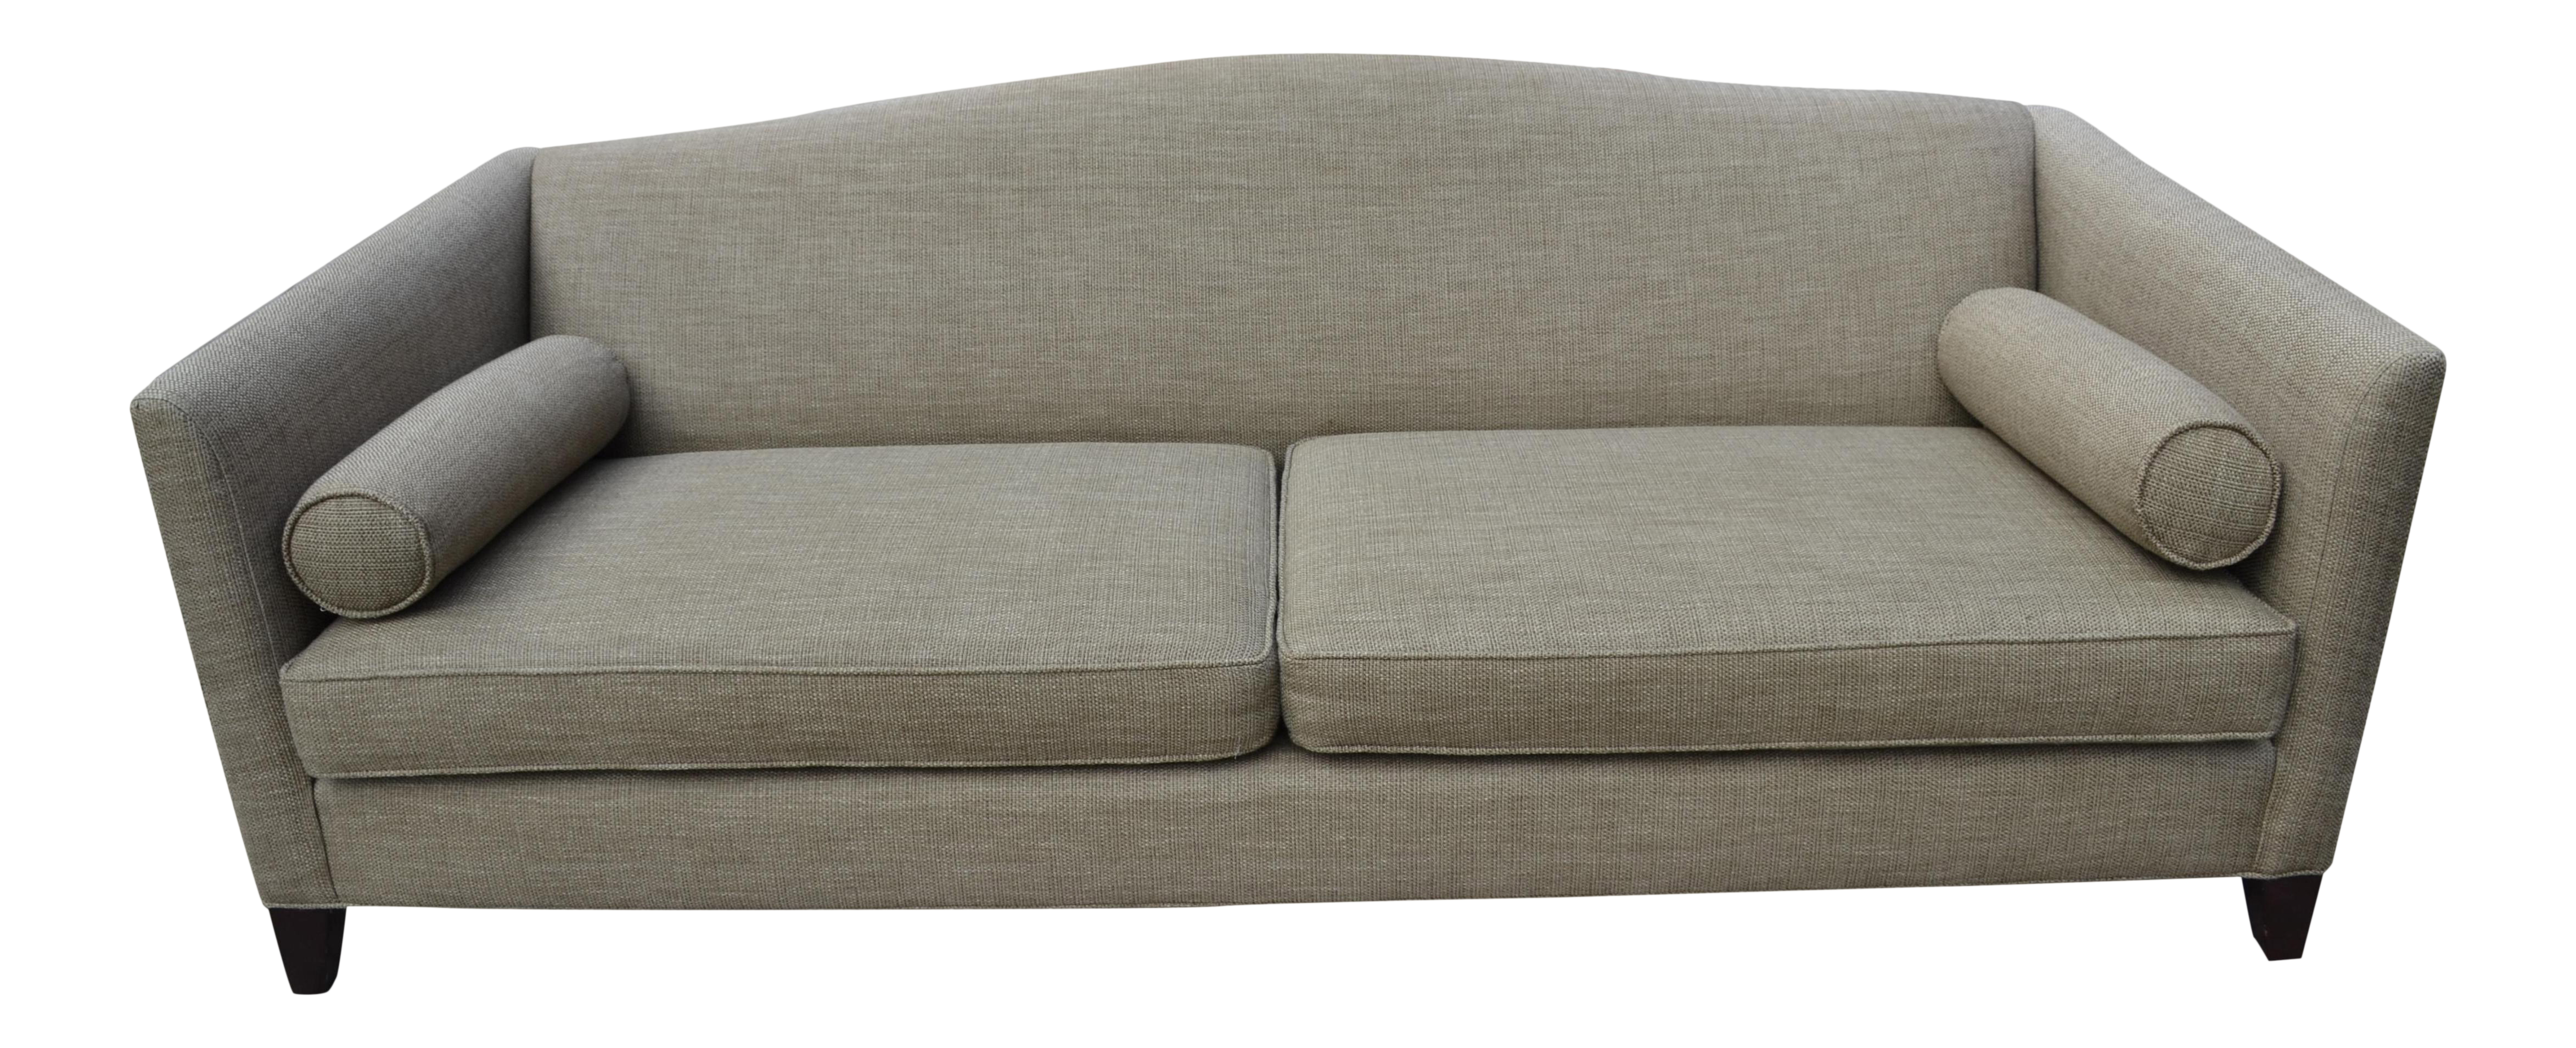 gently used mitchell gold bob williams furniture up to 70 off rh chairish com mitchell gold sofa sectional mitchell gold sofa sale